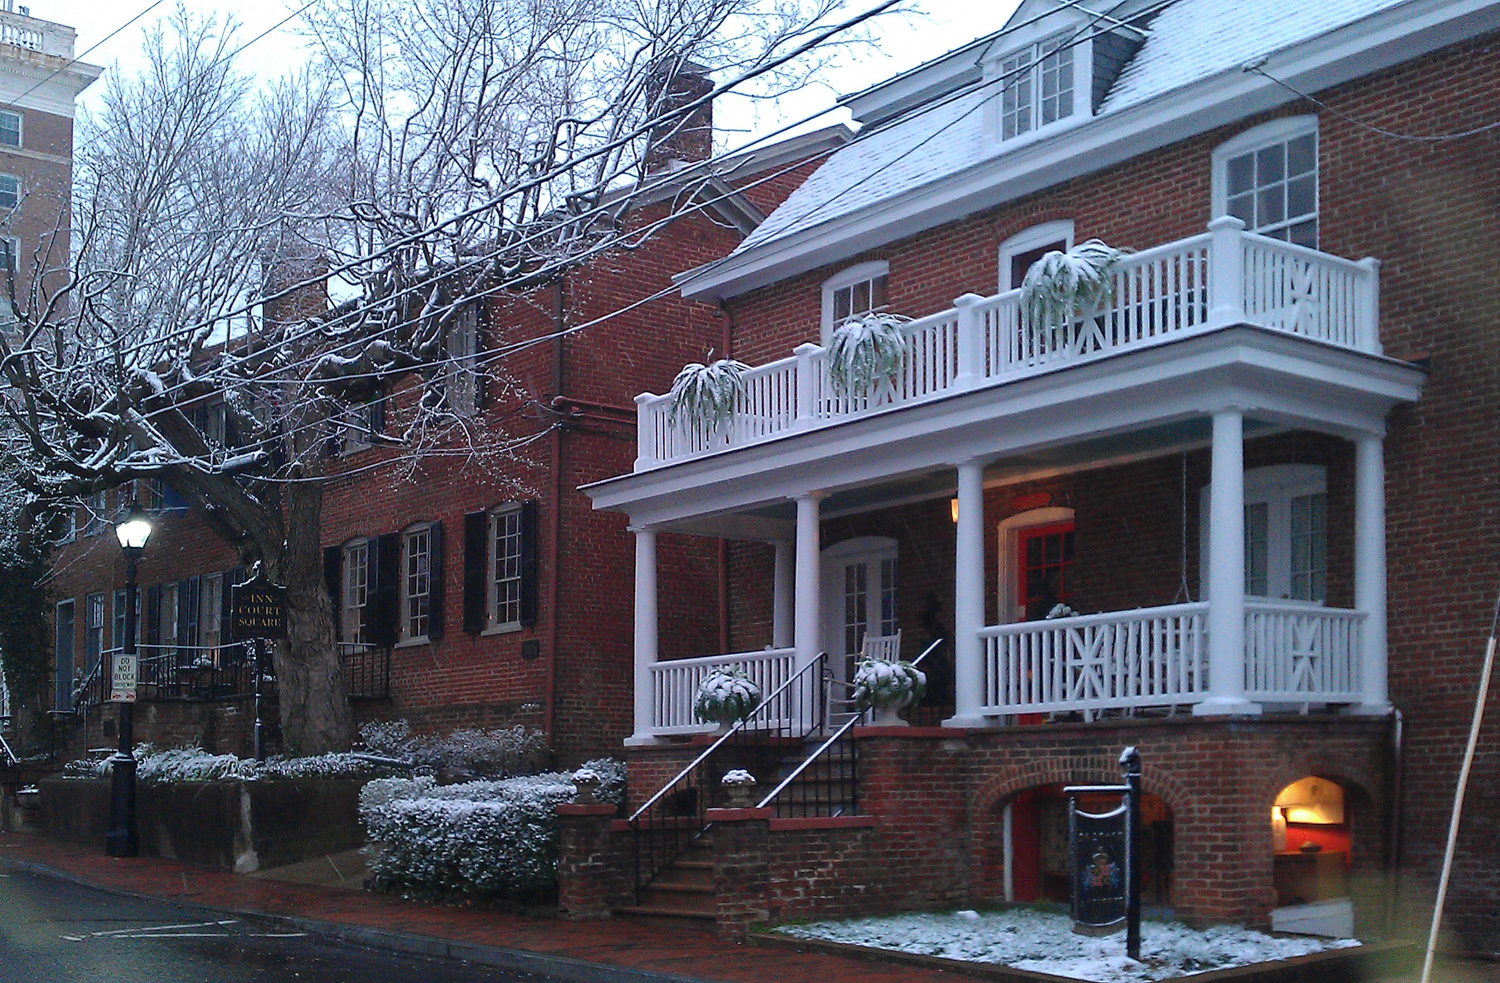 Molly Johnson House, The Inn at Court Square, Charlottesville, Virginia